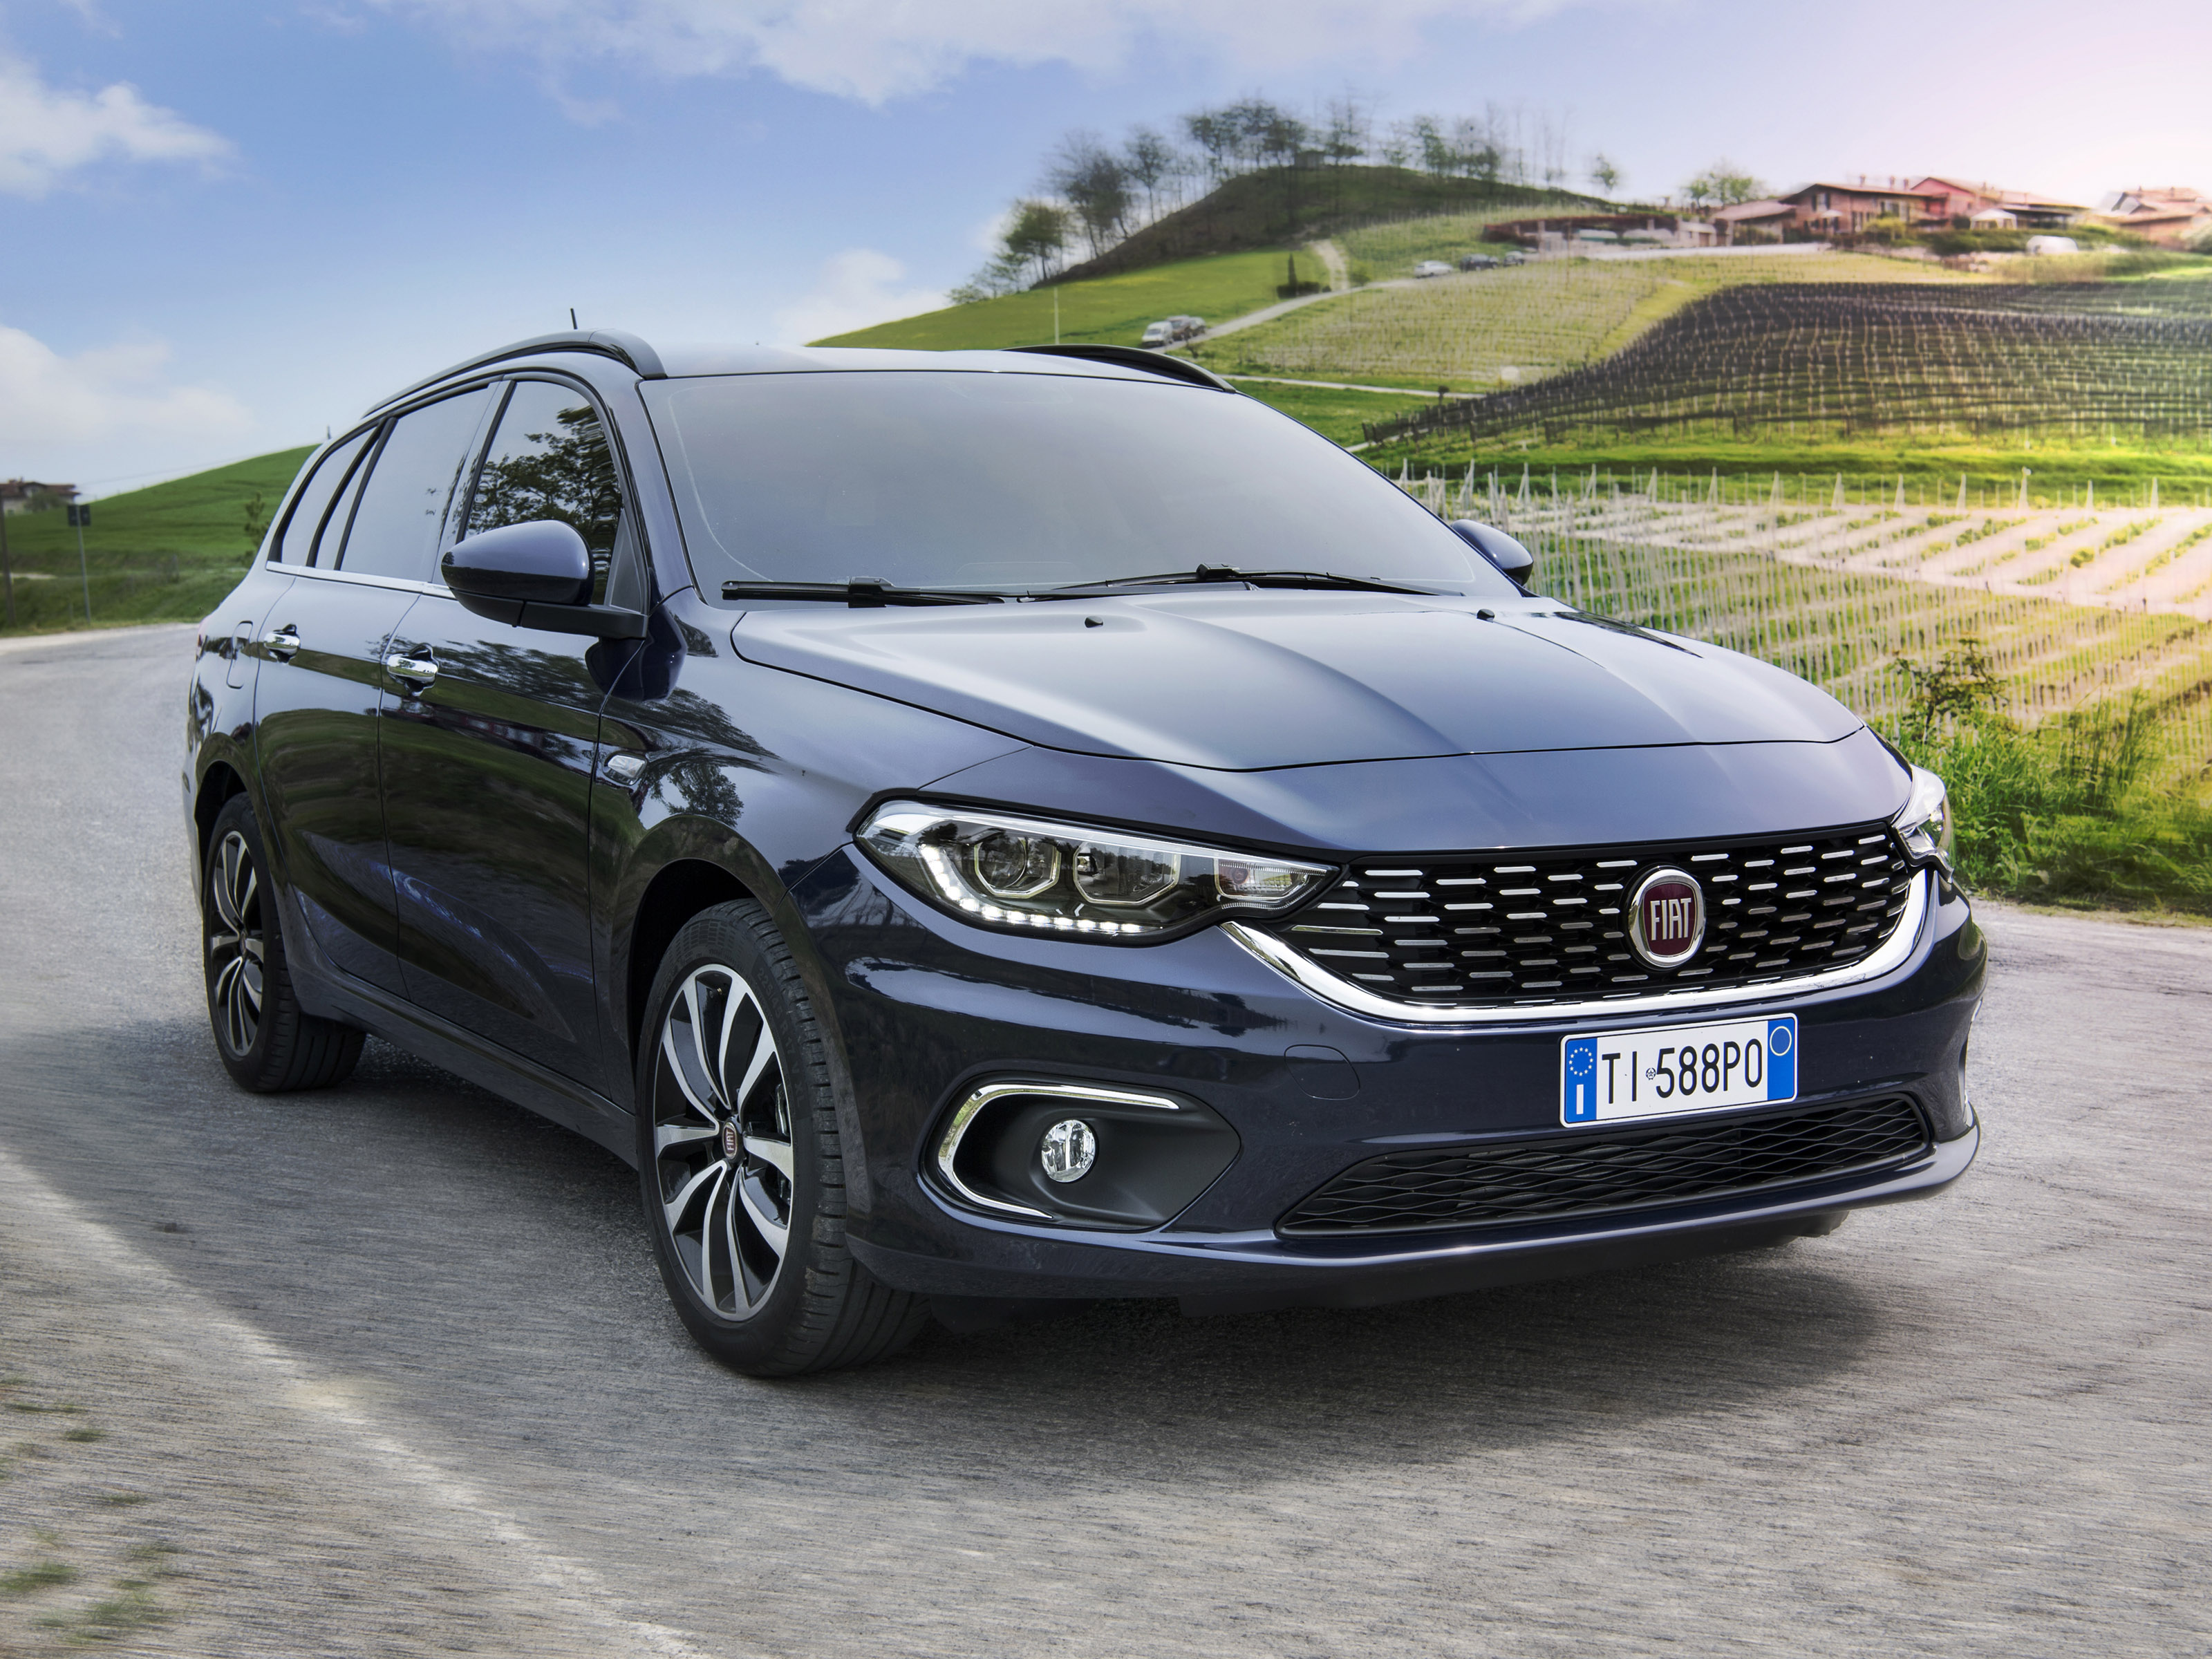 Fiat Tipo Station Wagon mod model